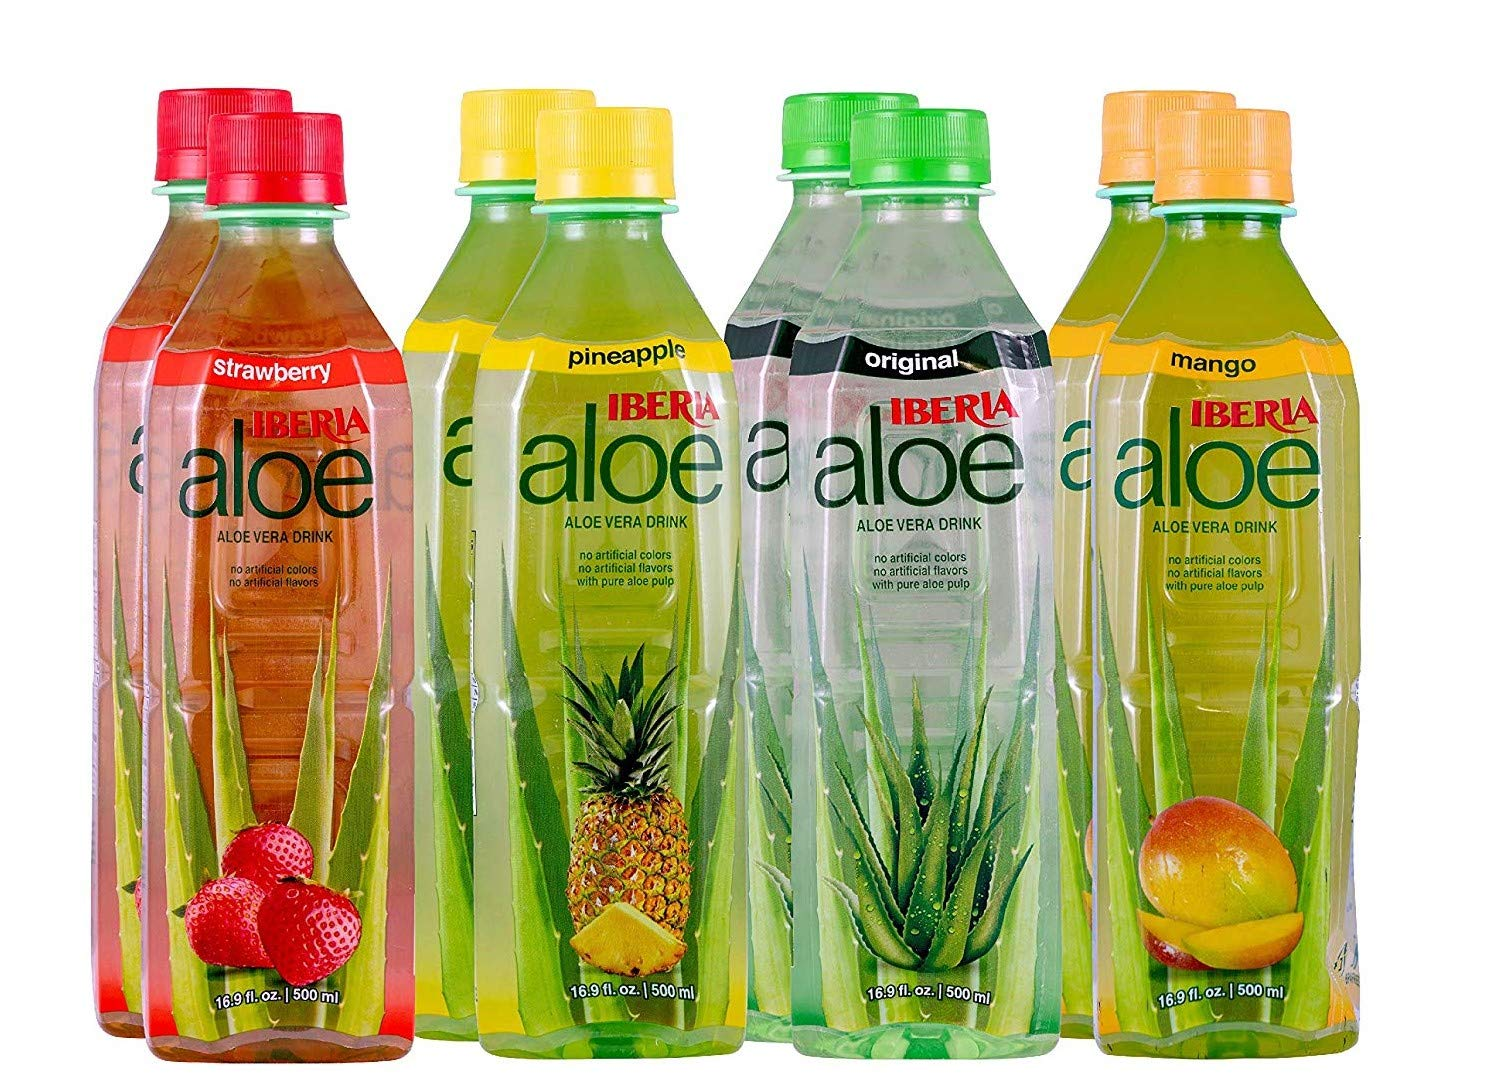 Iberia Aloe Vera Drink With Pure Aloe Pulp 16.9 Fl Oz (Pack of 8) No Artificial Color & Flavor, Aloe Juice Variety Pack with Original, Mango, Pineapple & Strawberry, Bpa Free